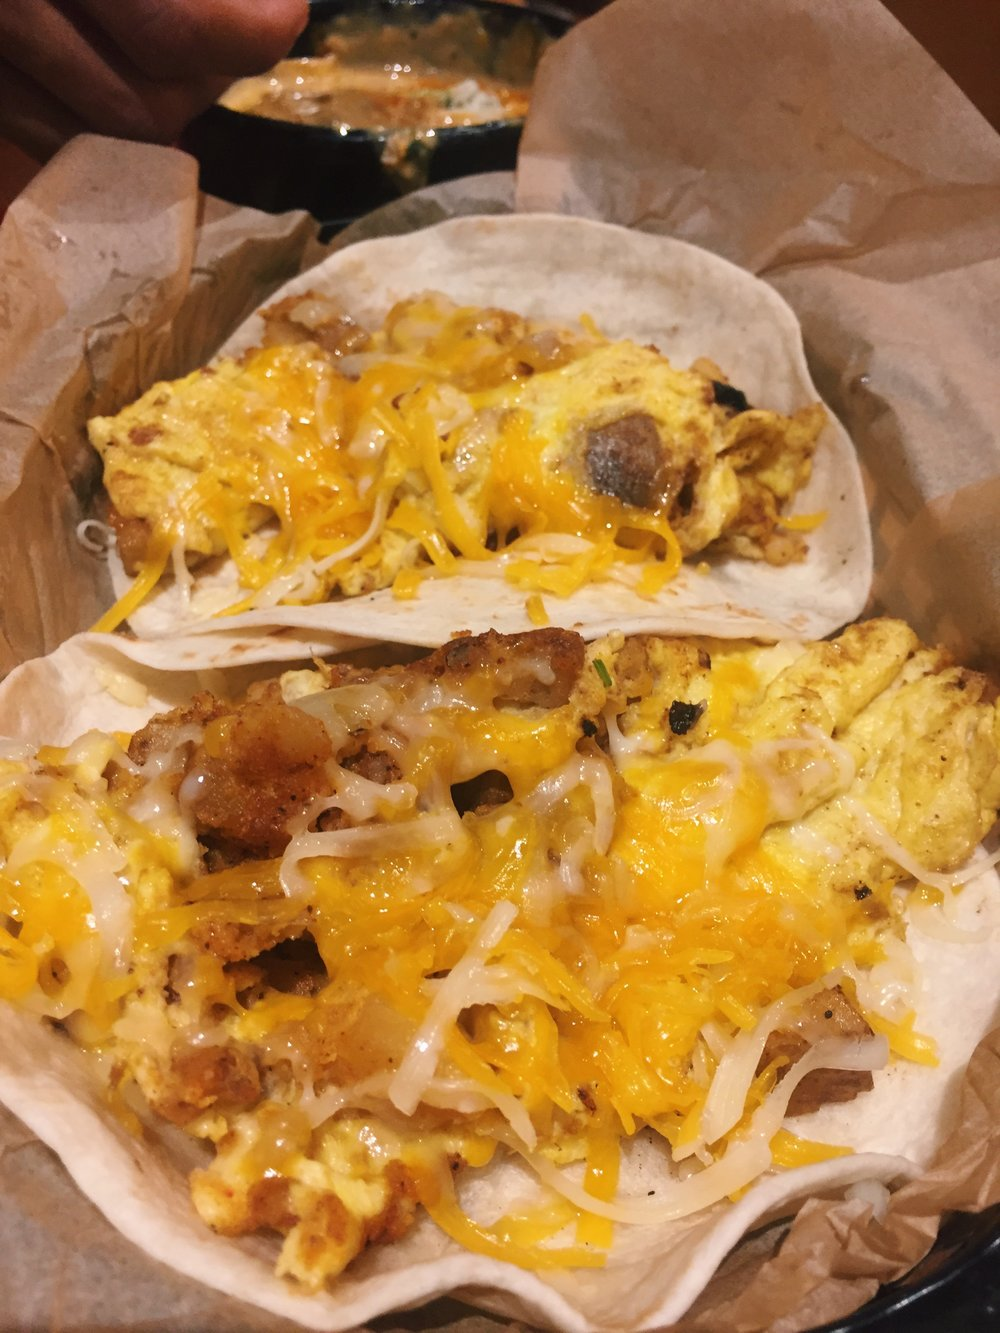 potato, egg and cheese breakfast tacos from Torchy's Tacos